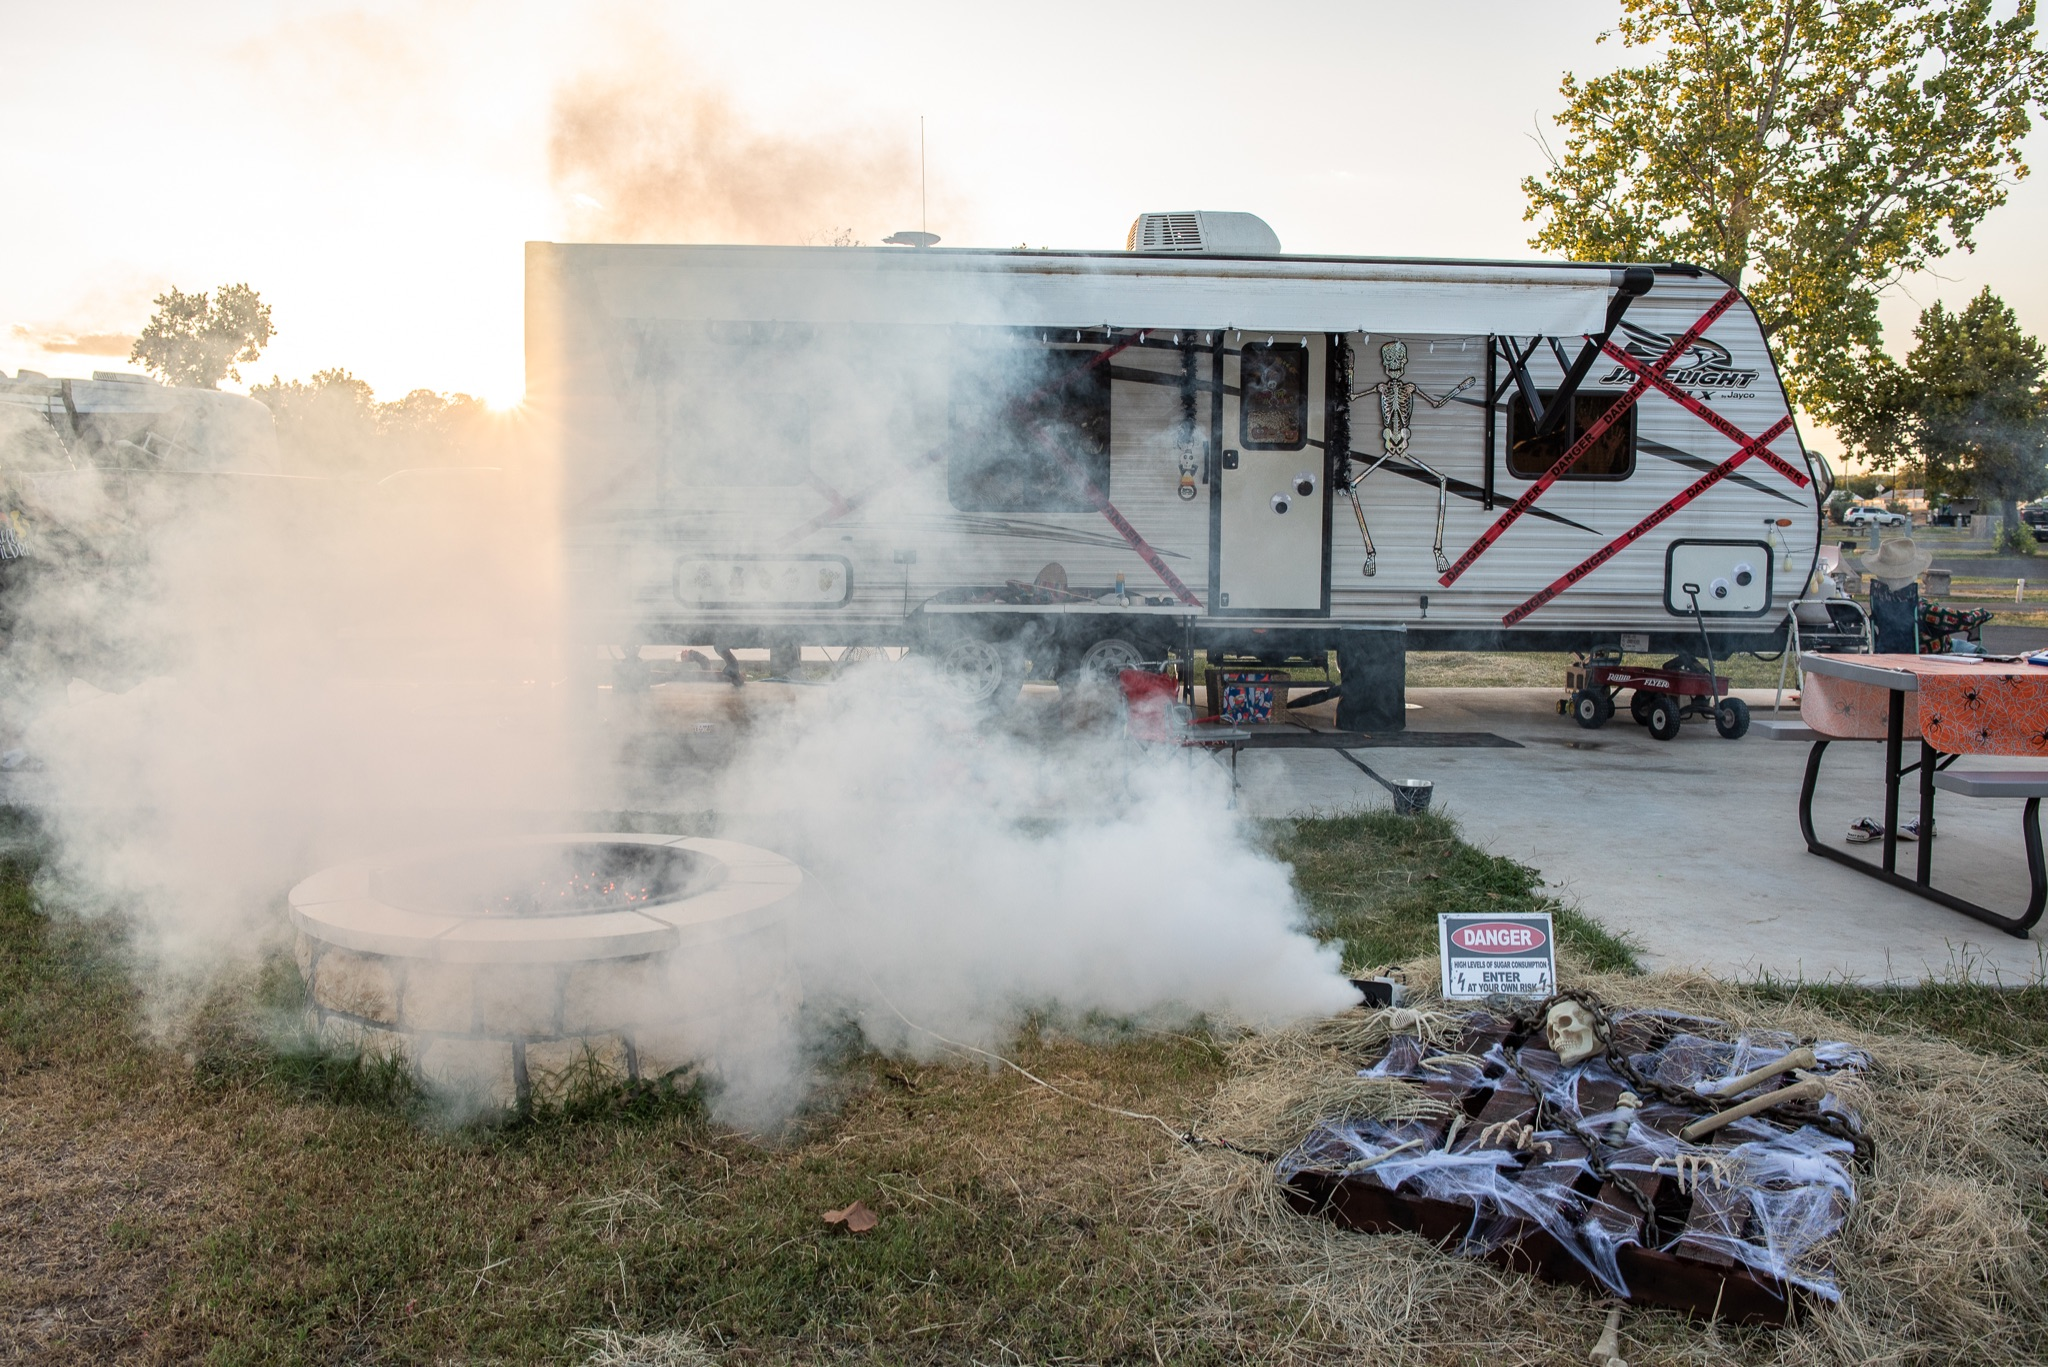 RV and campsite decorated for halloween with smoke machine